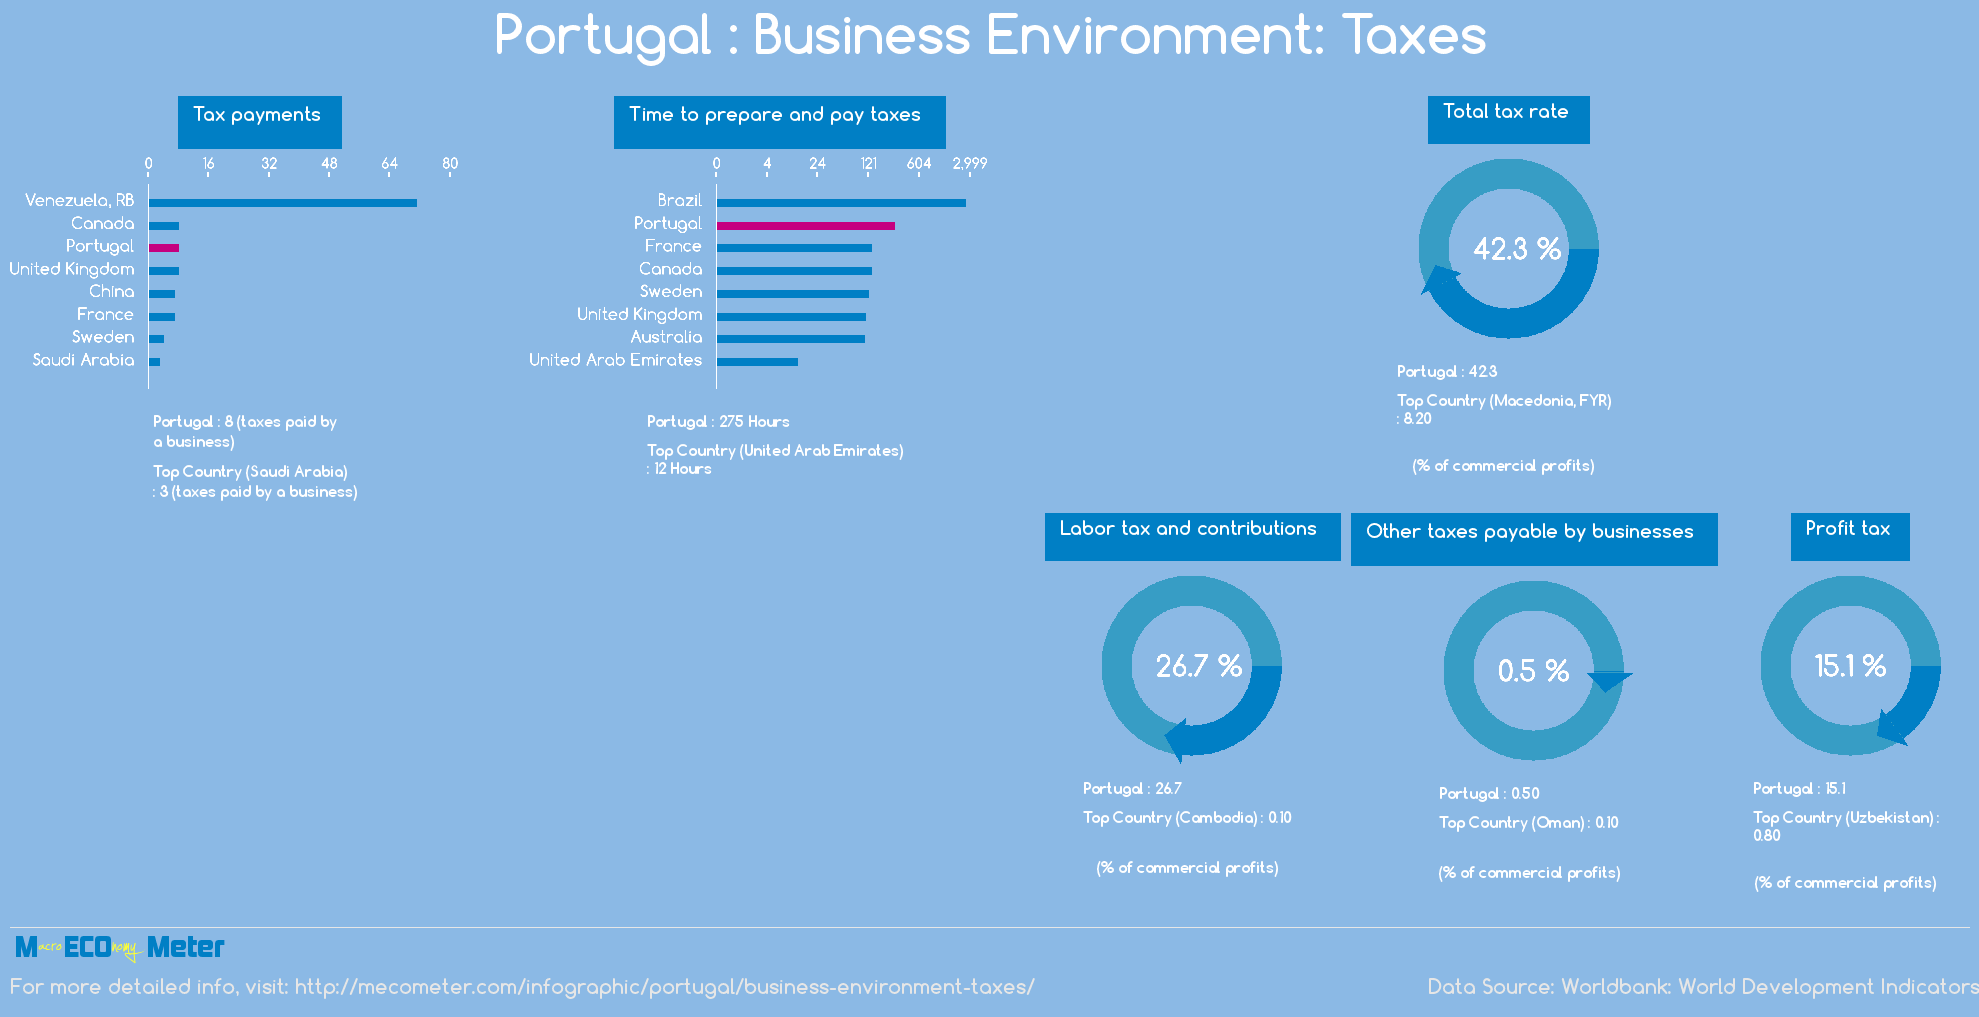 Portugal : Business Environment: Taxes